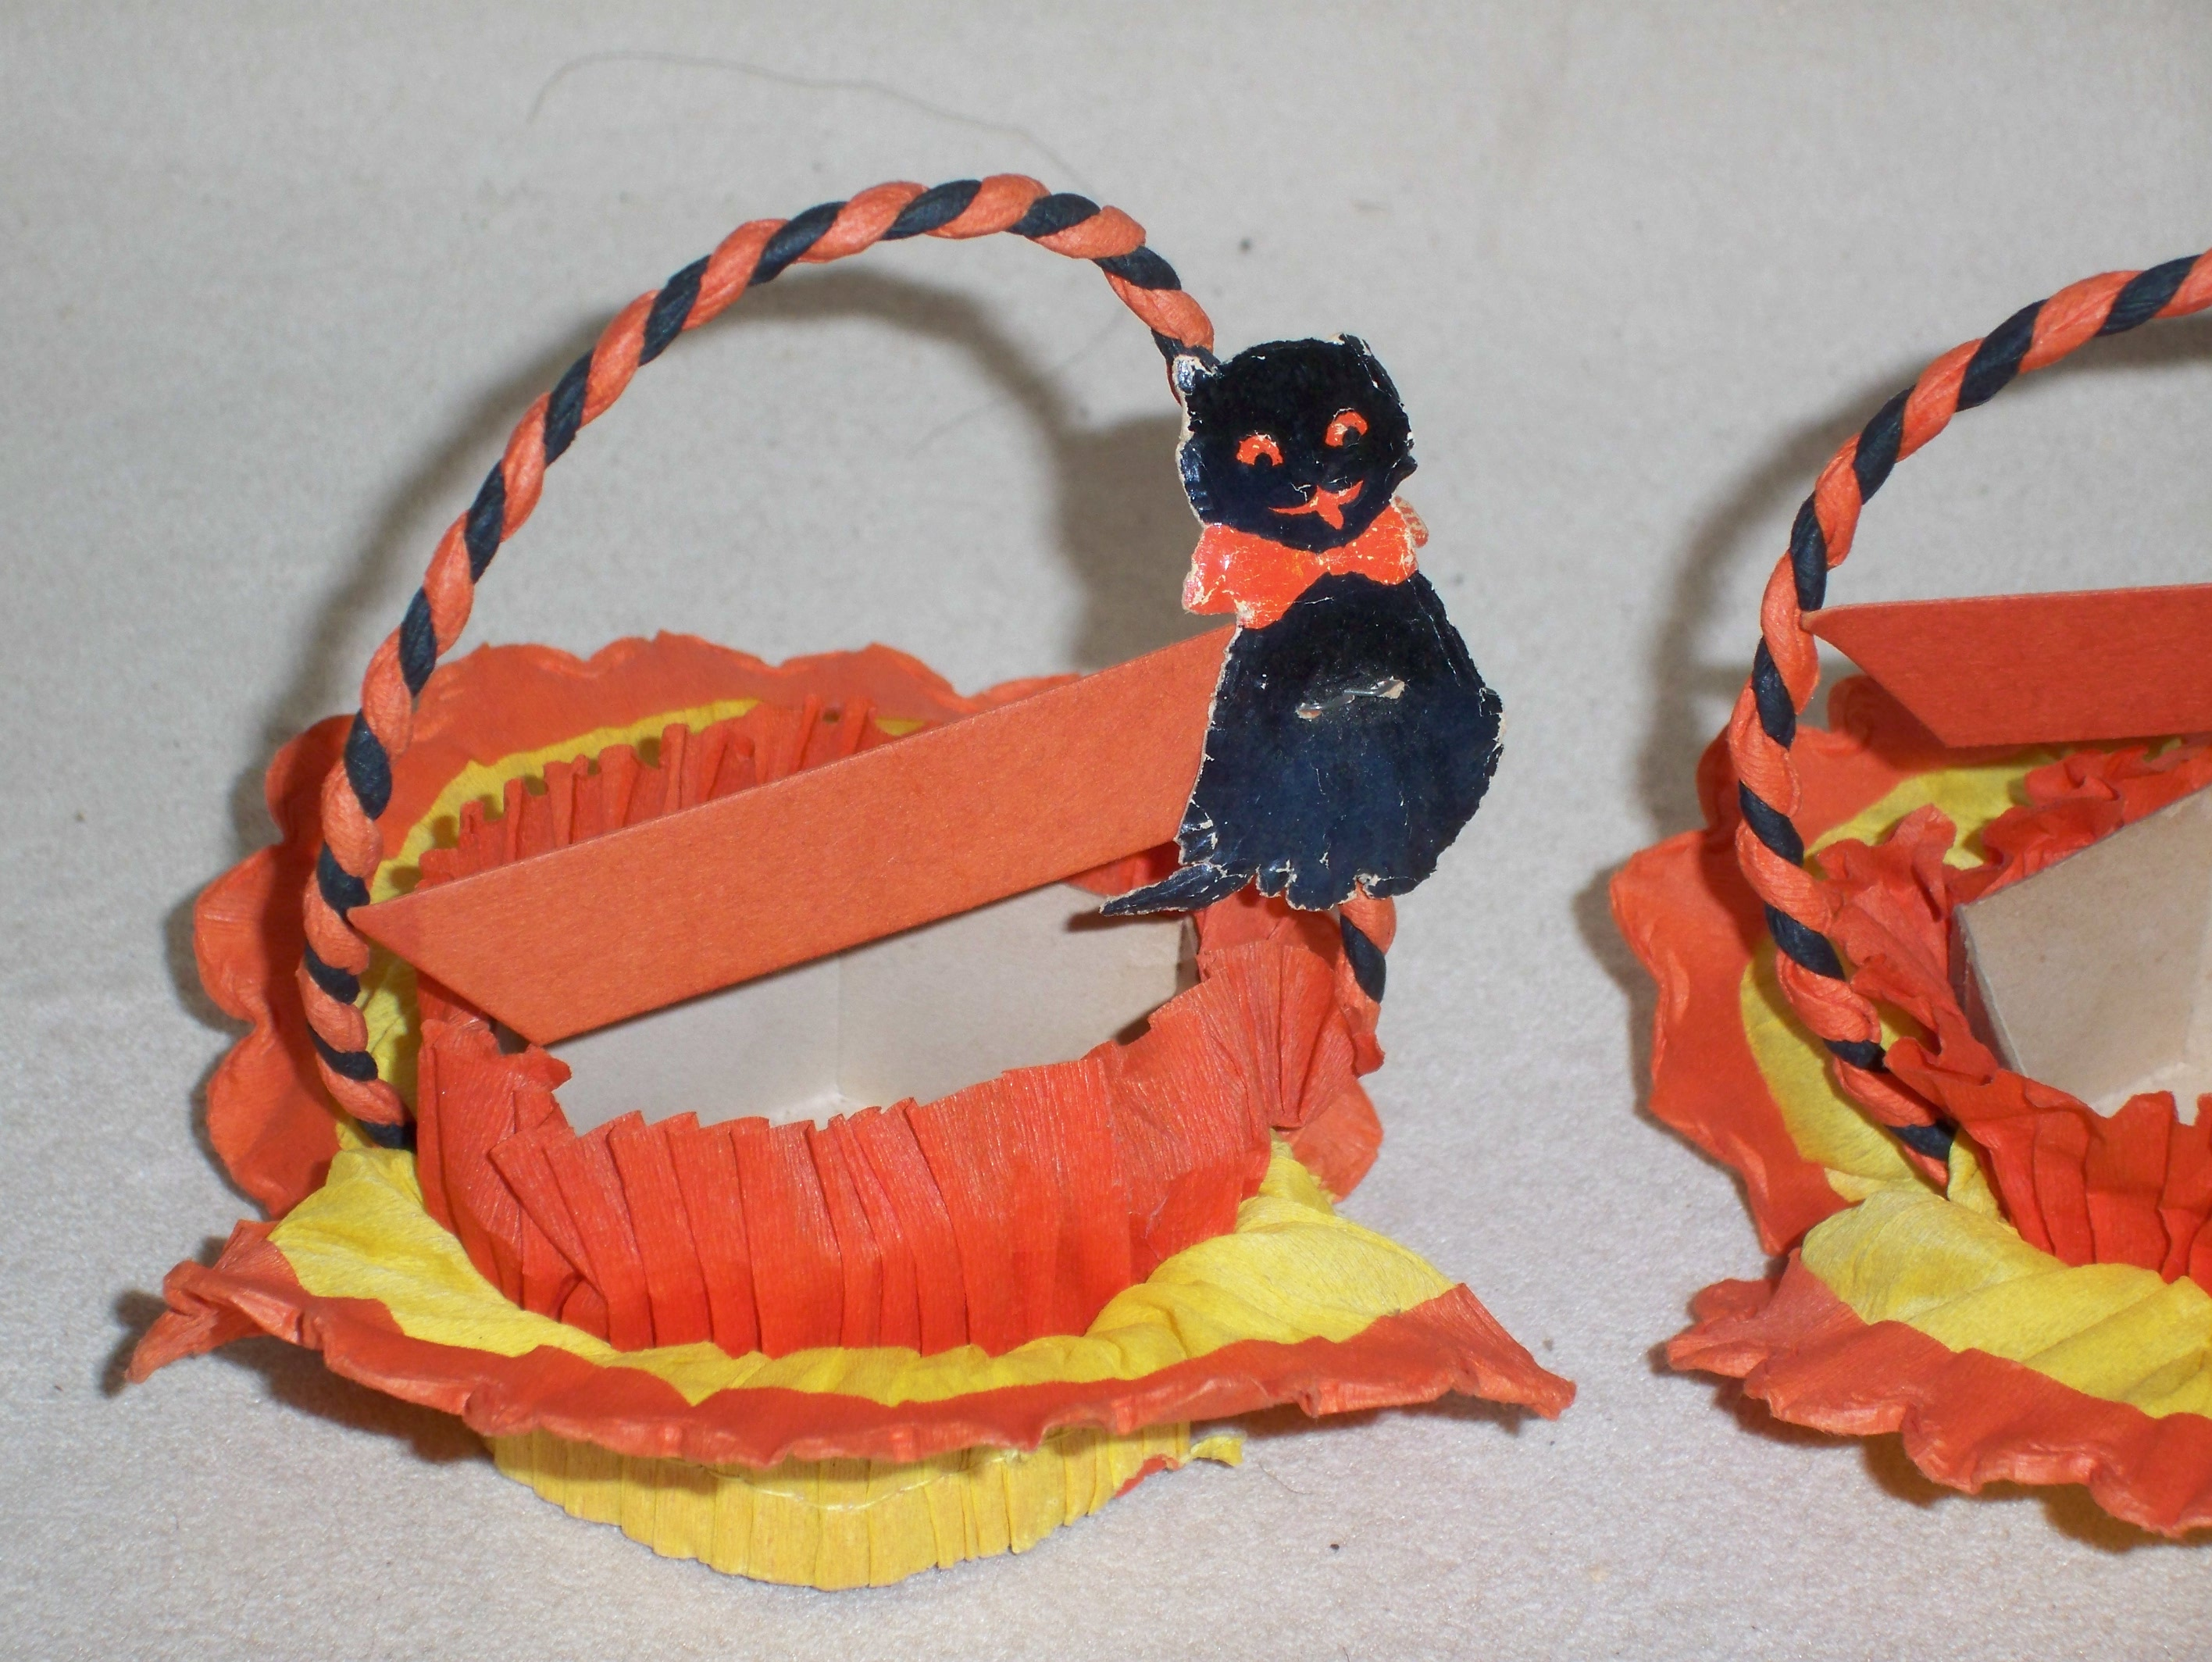 1960s halloween decorations - Do Not I Repeat Do Not Throw Away Your Old Halloween Decorations If You Have Any Of Grandma S Old Things Look Them Up On Ebay And Be Prepared For A Nice